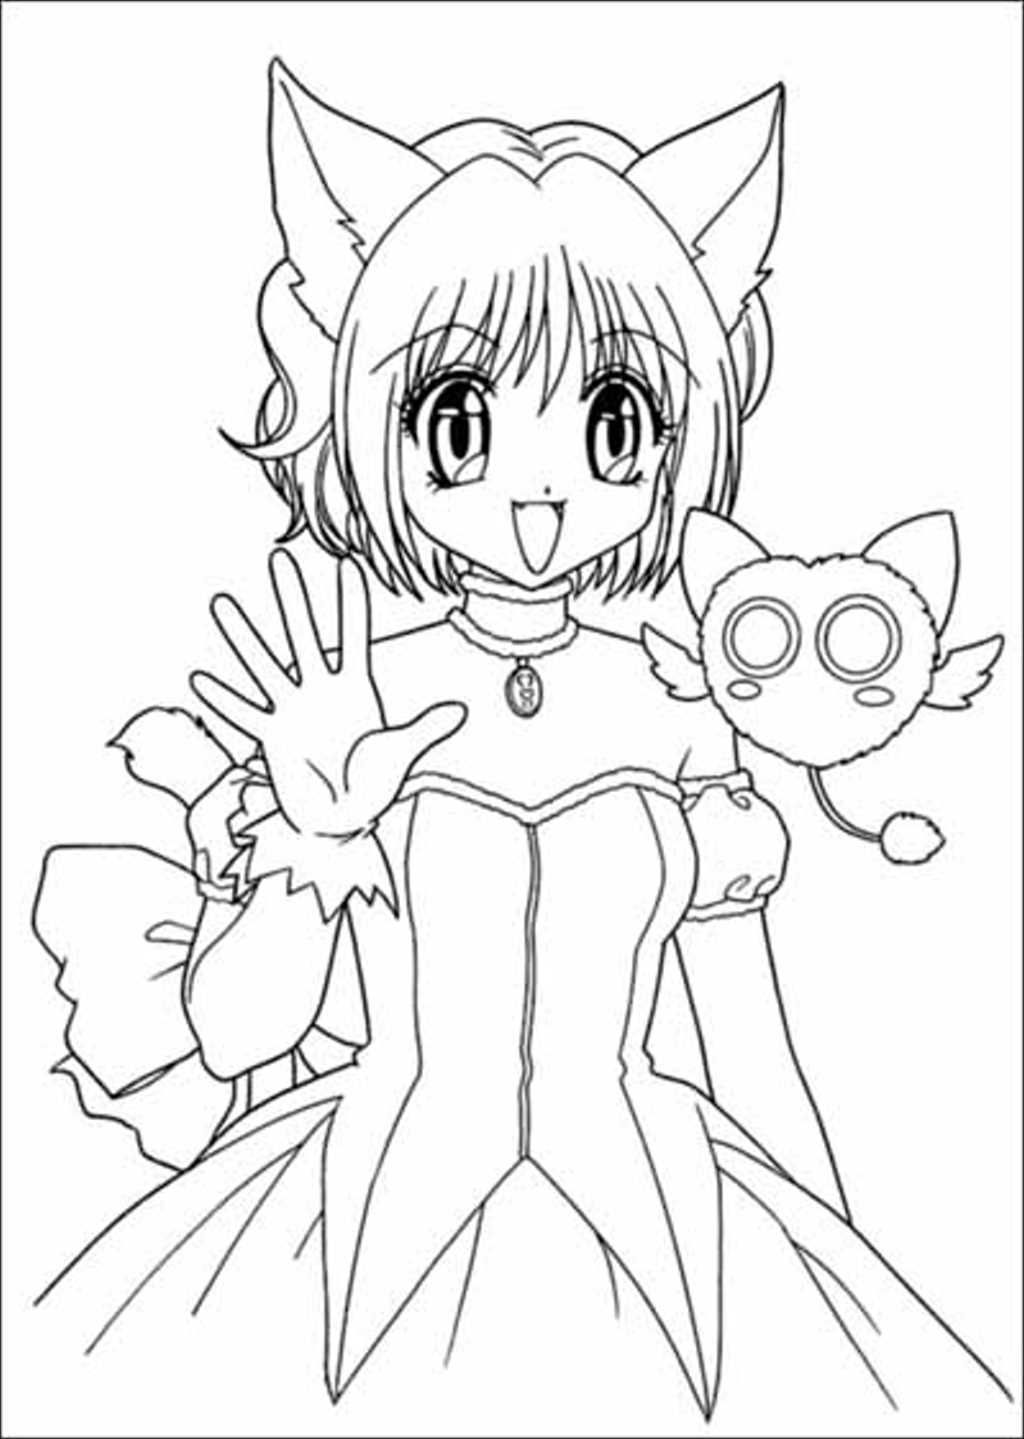 Tokyo Mew Mew Coloring Pages Free Coloring Pages Download | Xsibe ...